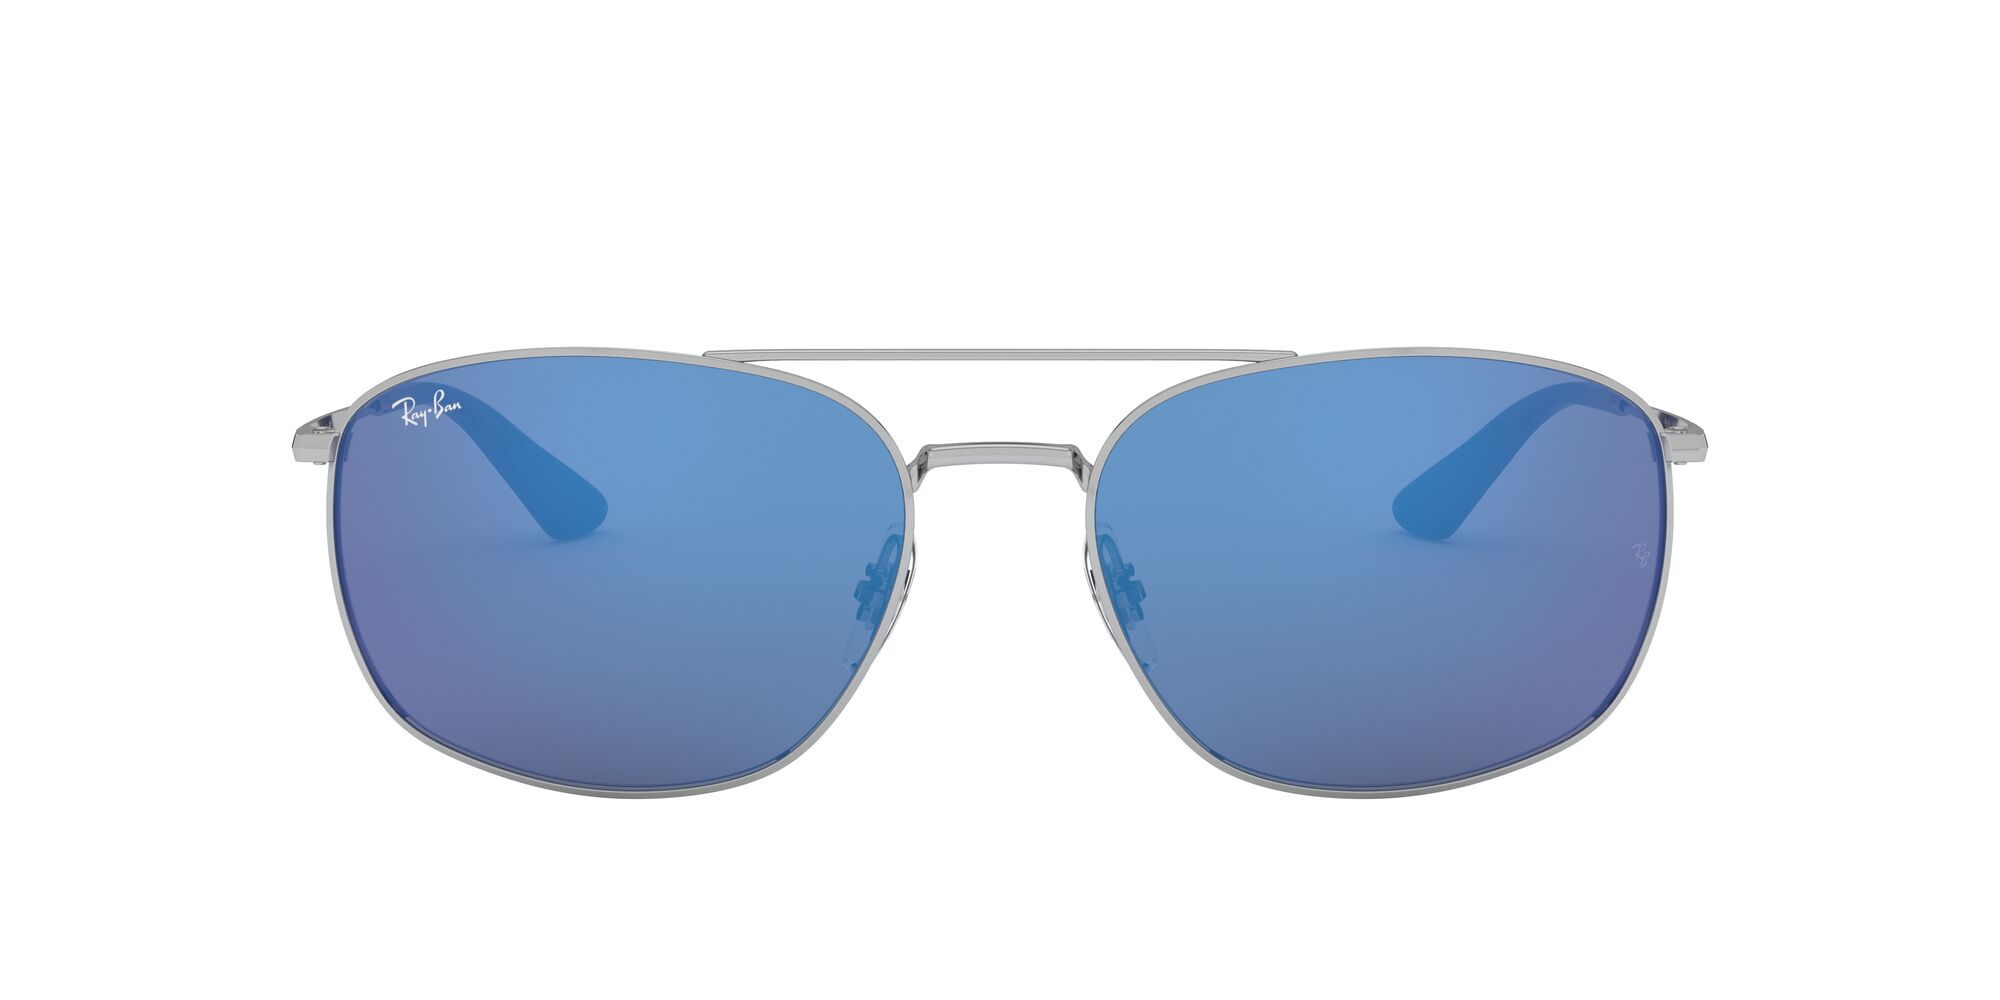 Front Ray-Ban Ray-Ban 0RB3654 003/55 60/18 Zilver/Blauw